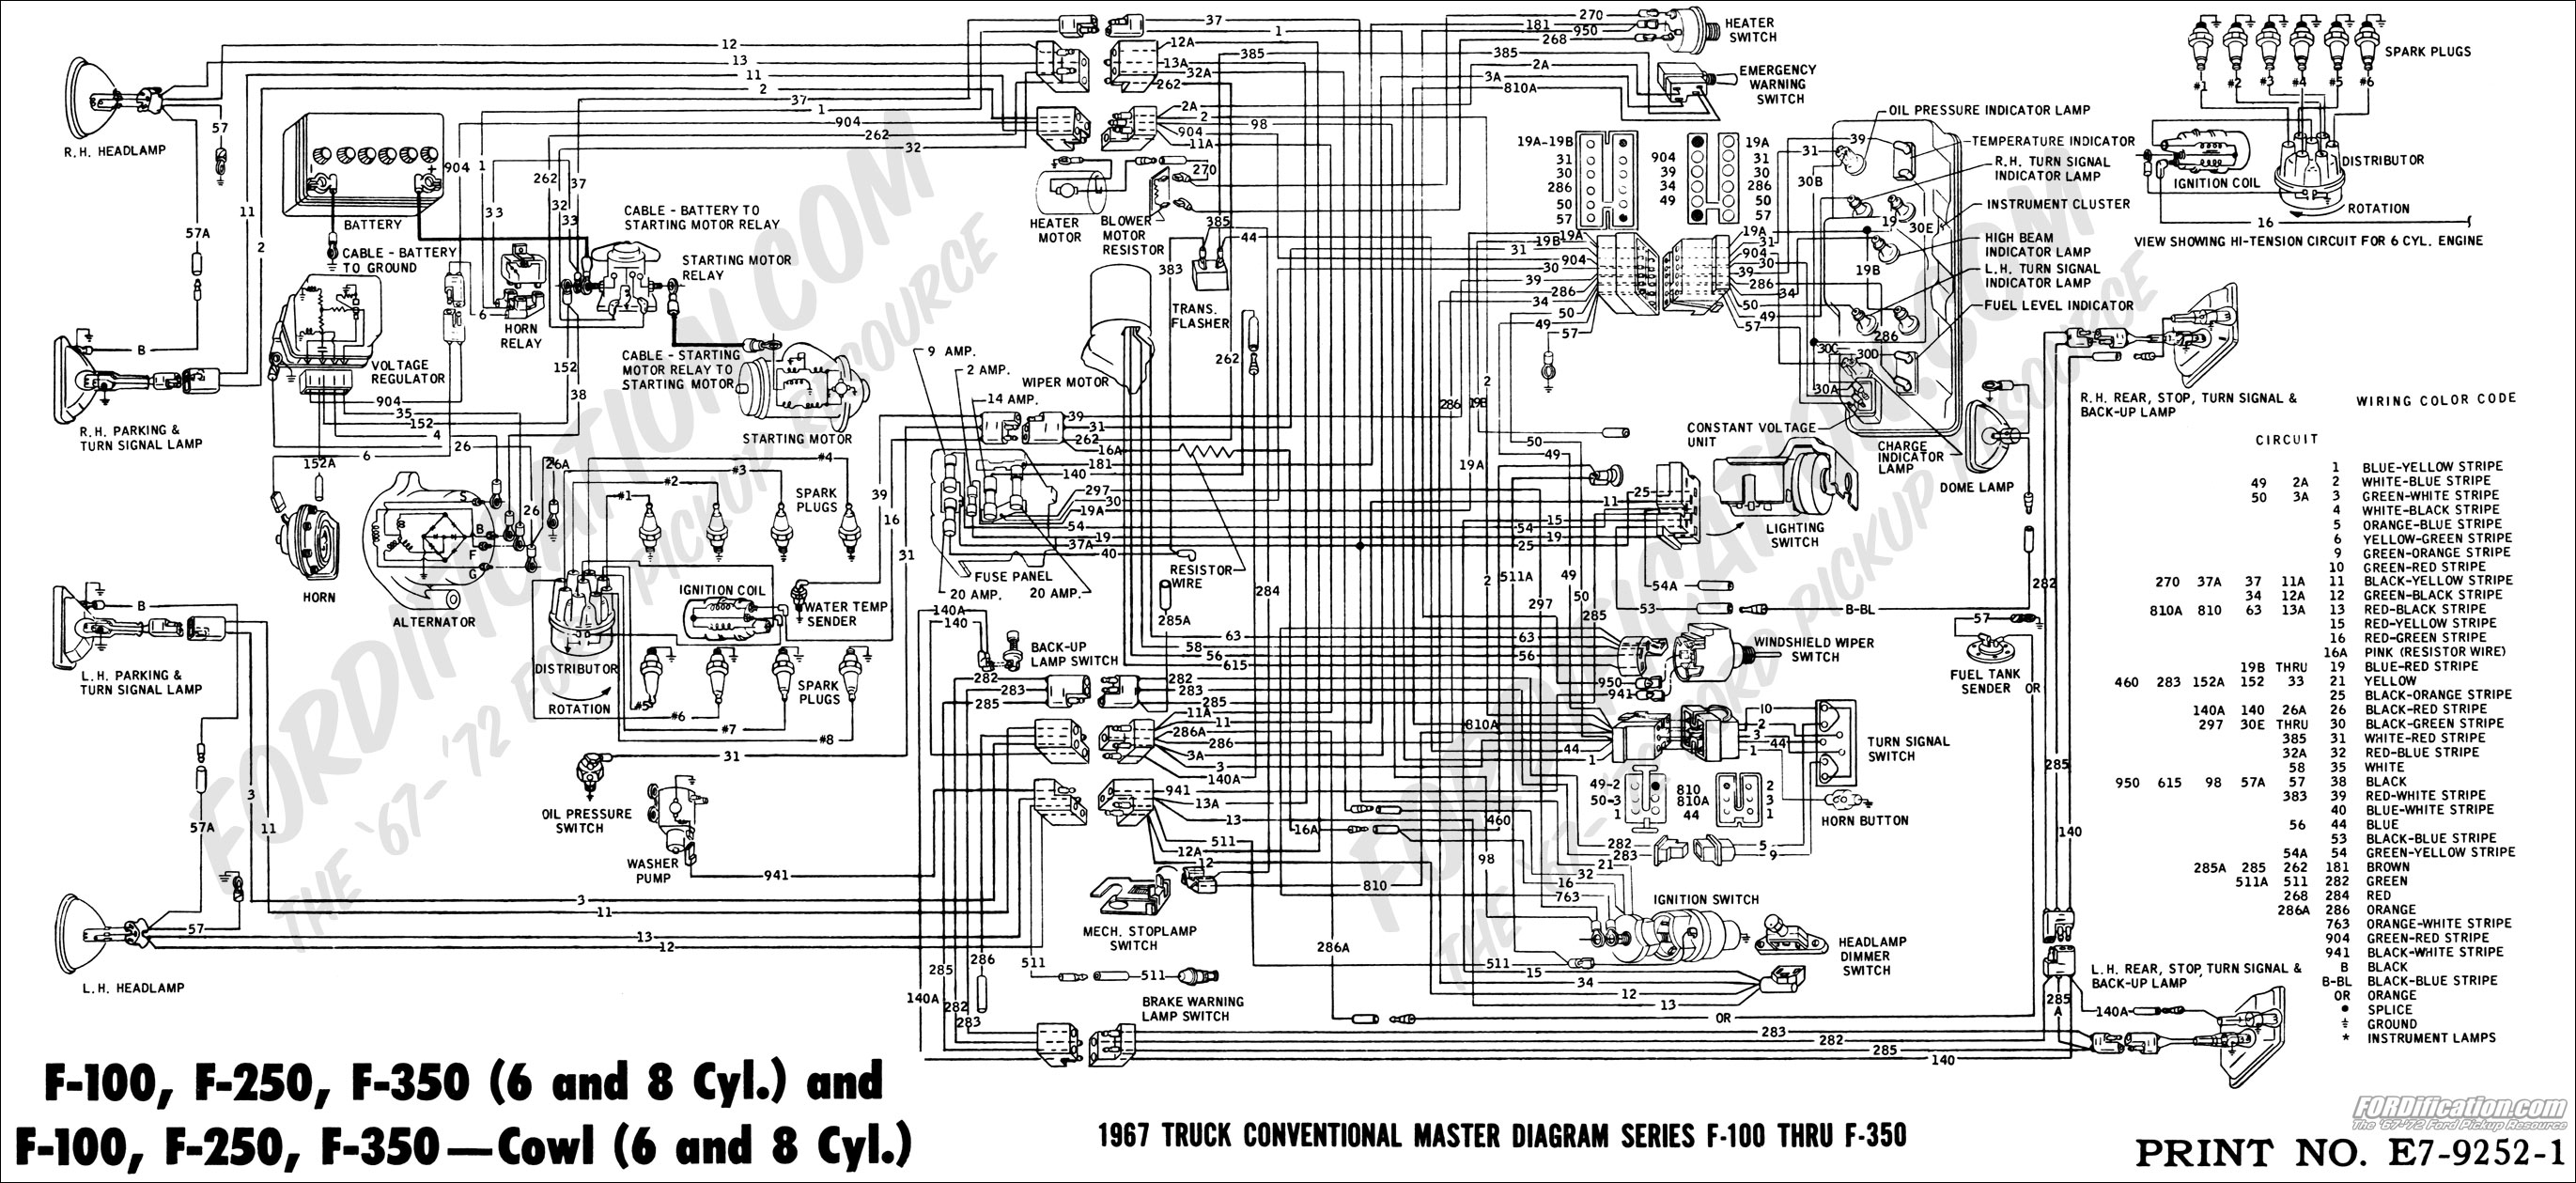 67masterdiagram 07 f150 starter wiring diagram 07 f150 wiring diagram \u2022 wiring wiring diagram for 2002 f250 starter at webbmarketing.co